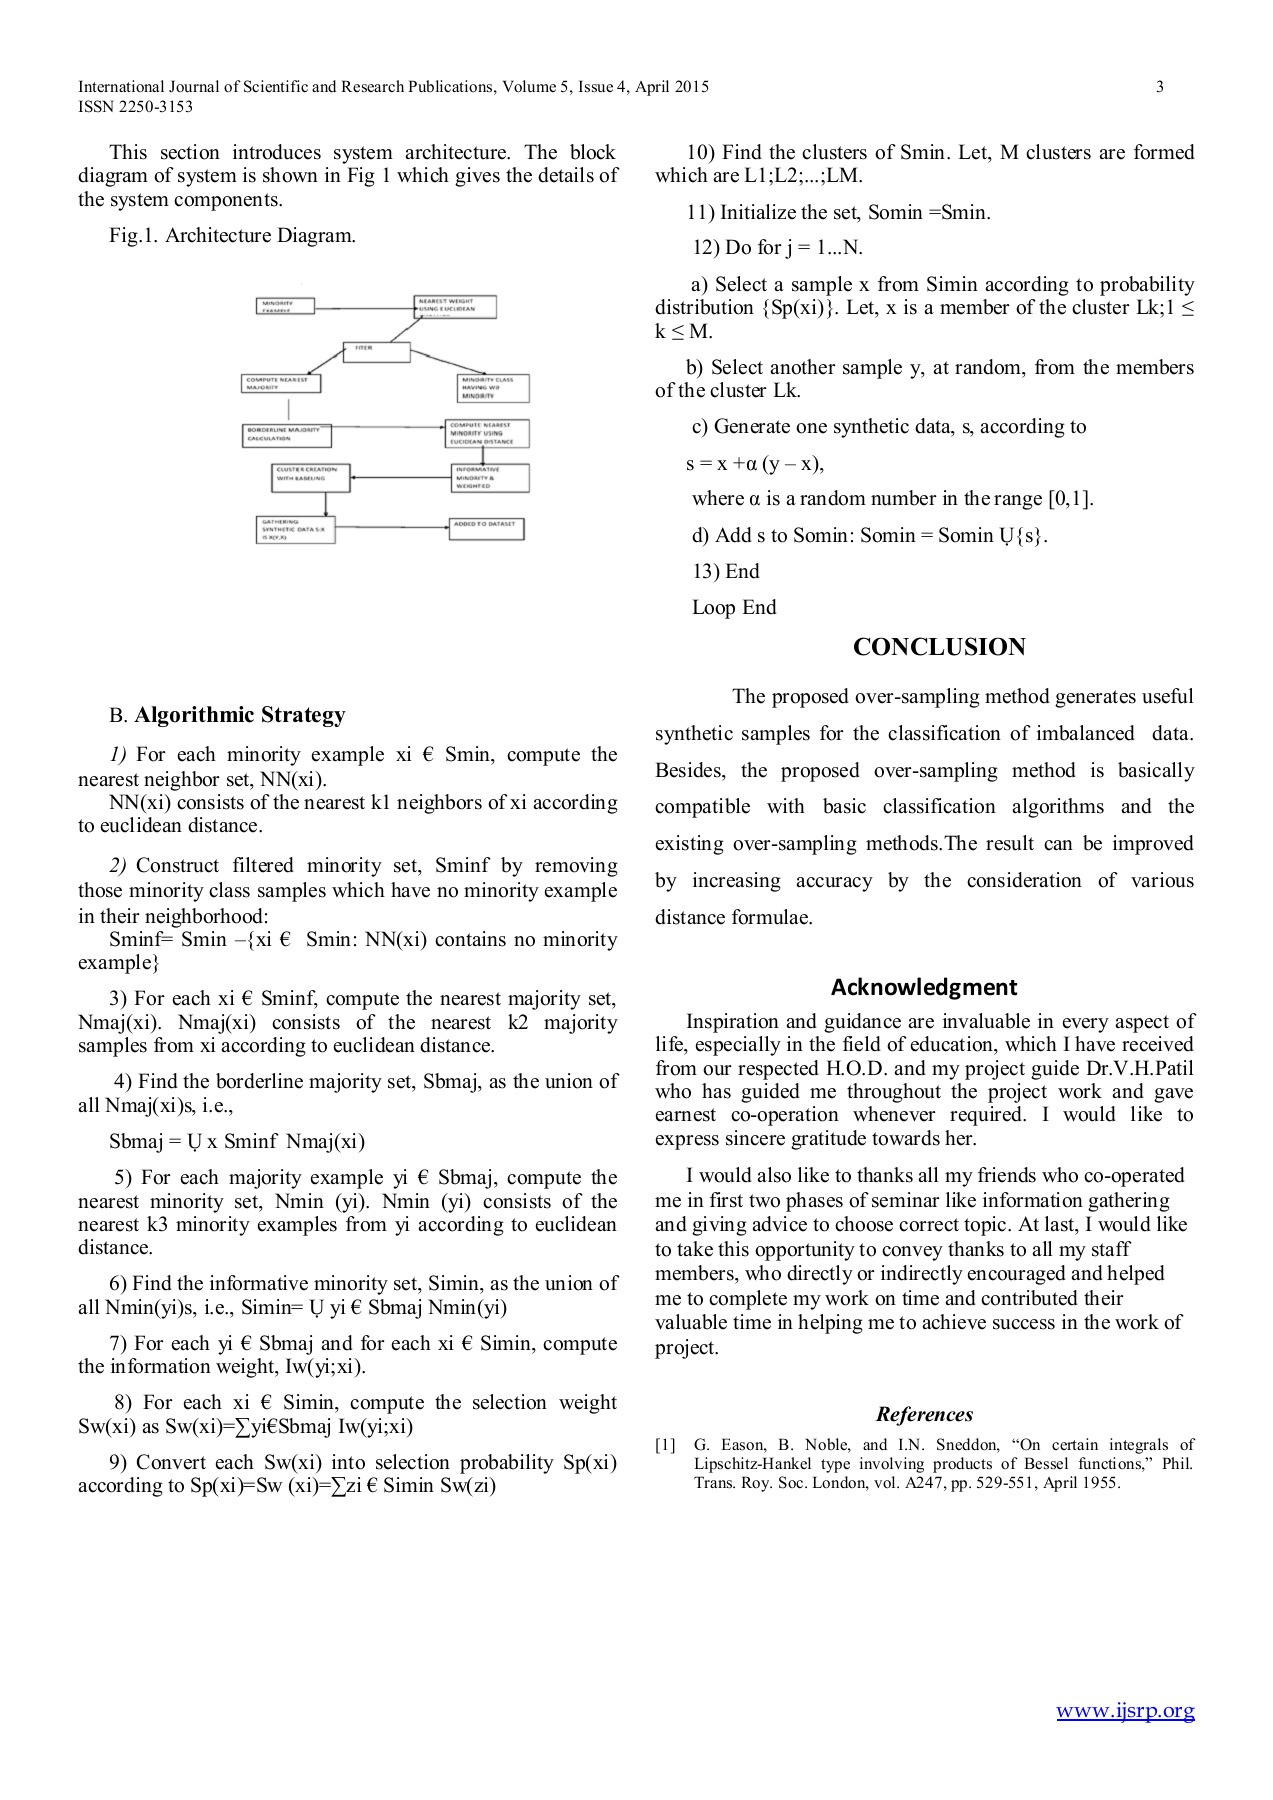 Minority Oversampling Technique for Imbalanced Data Pages 1